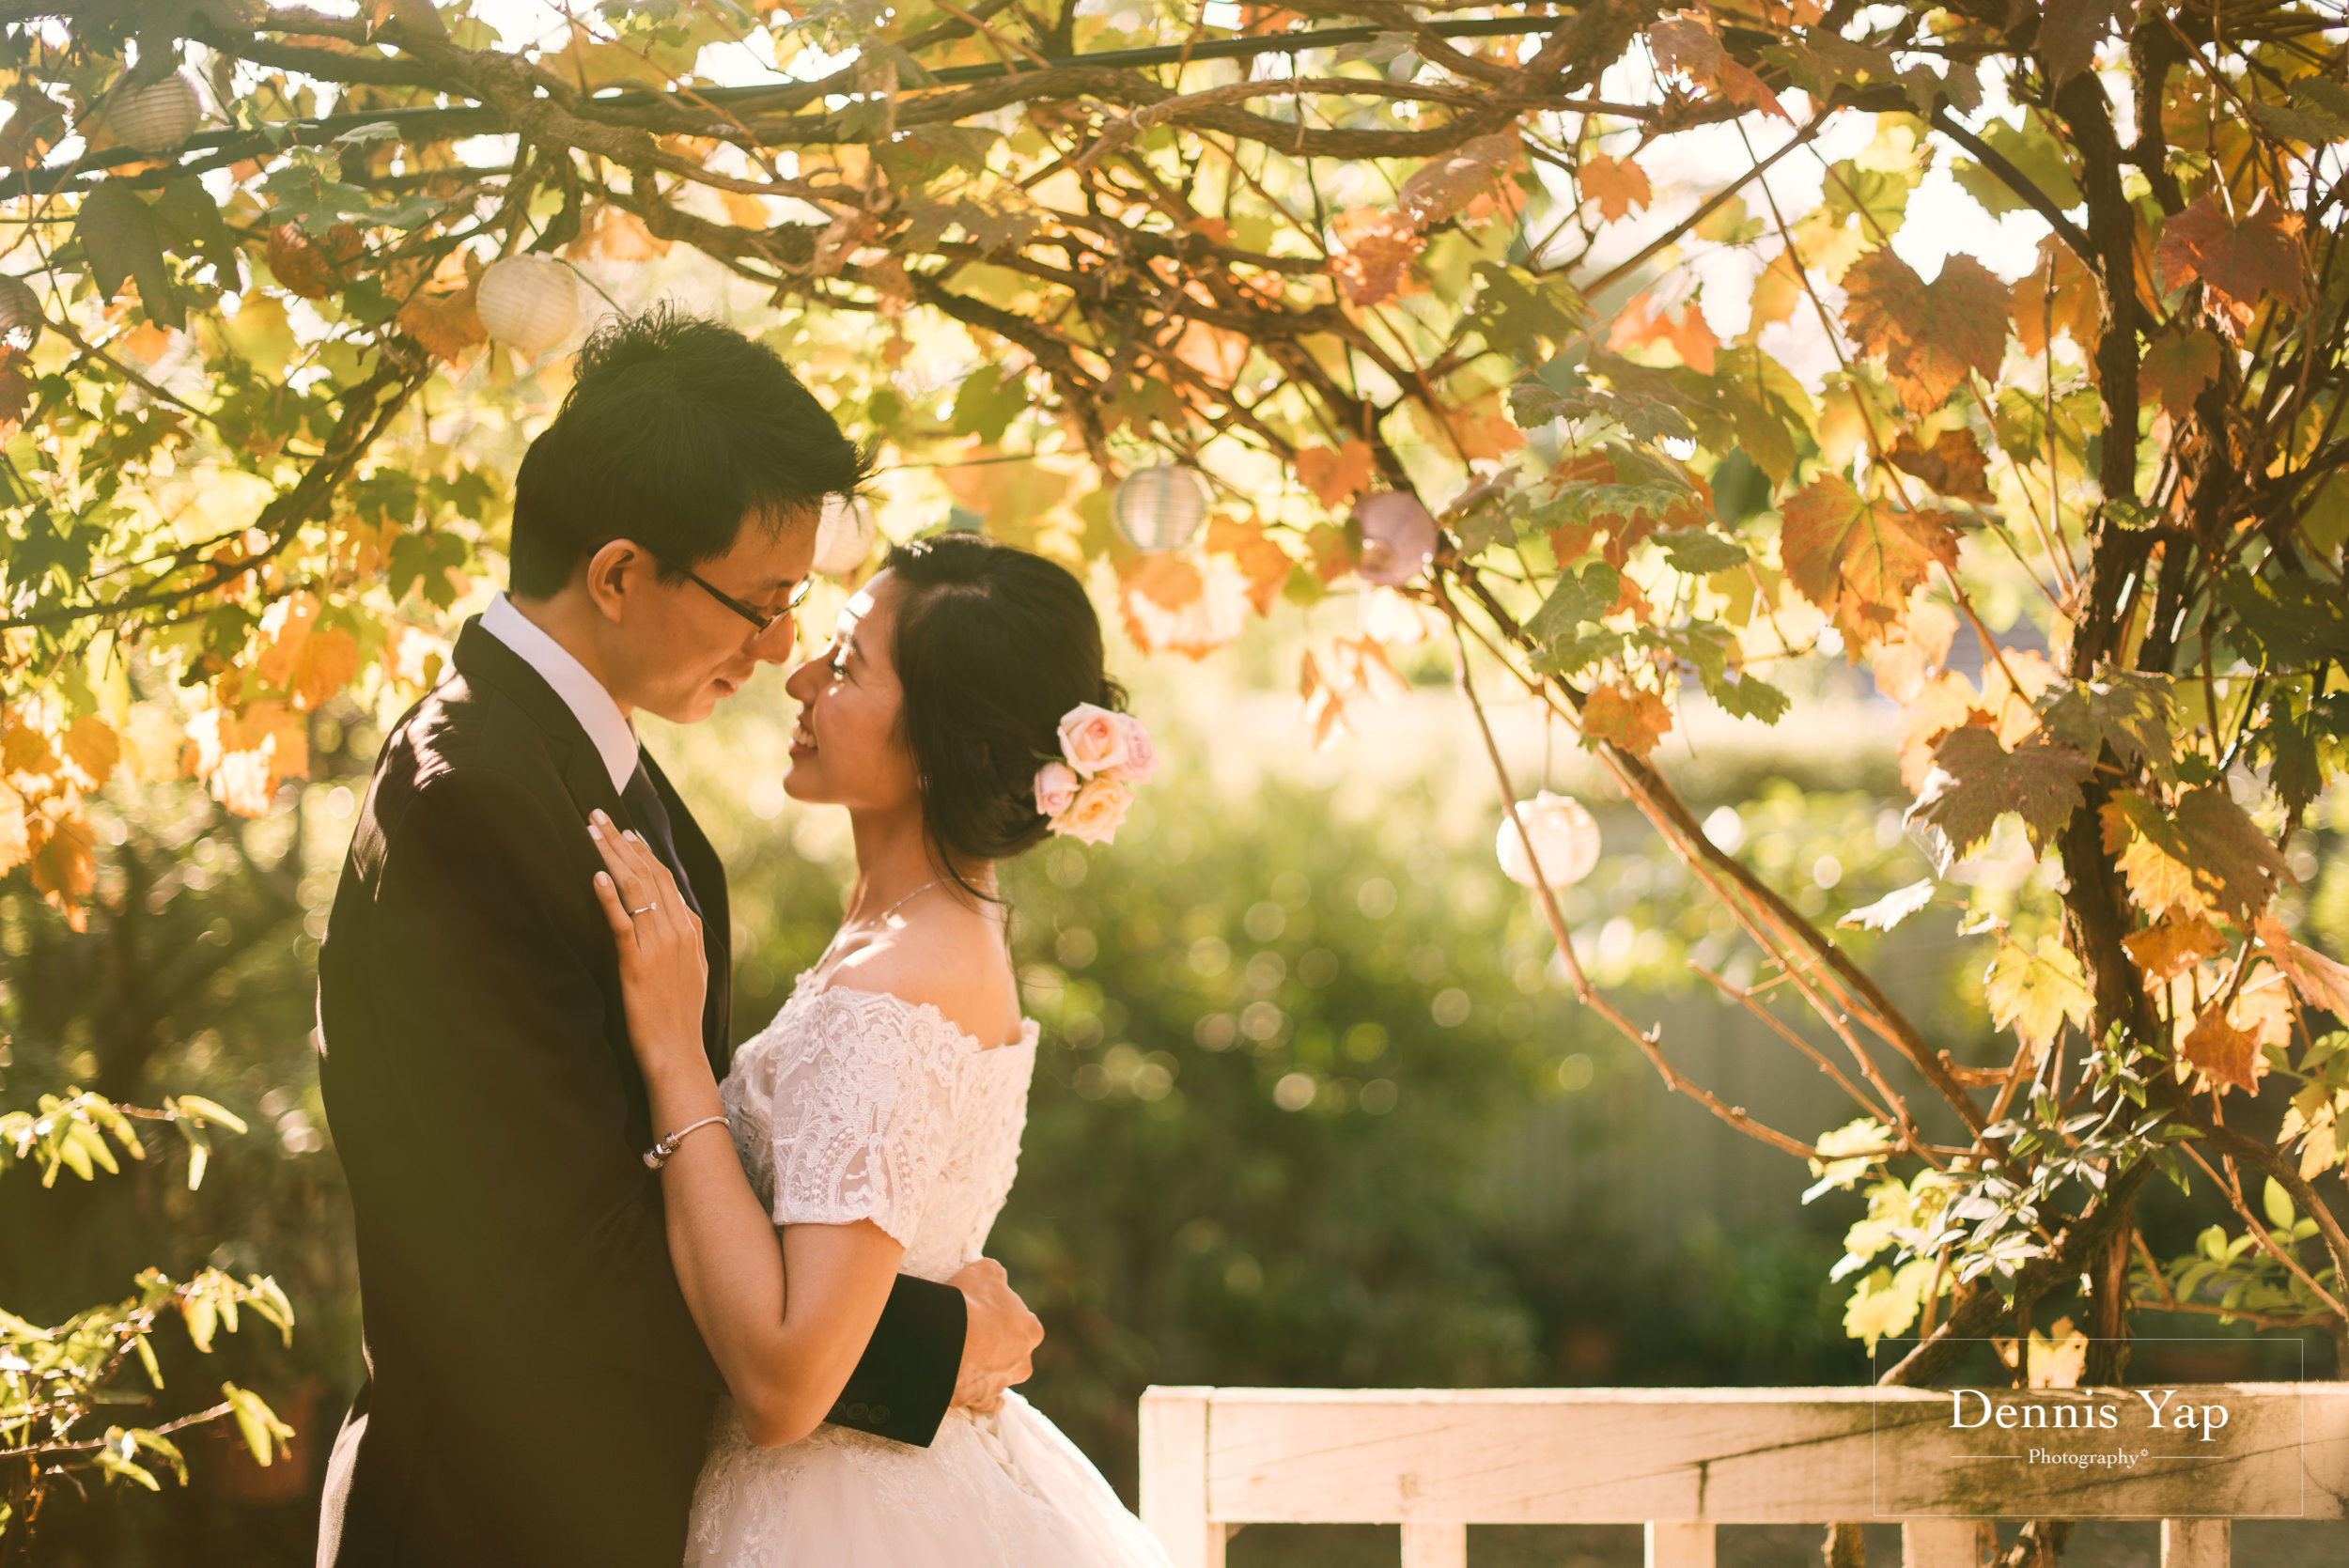 daniel amelia pre wedding melbourne dennis yap photography malaysia wedding photographer-14.jpg